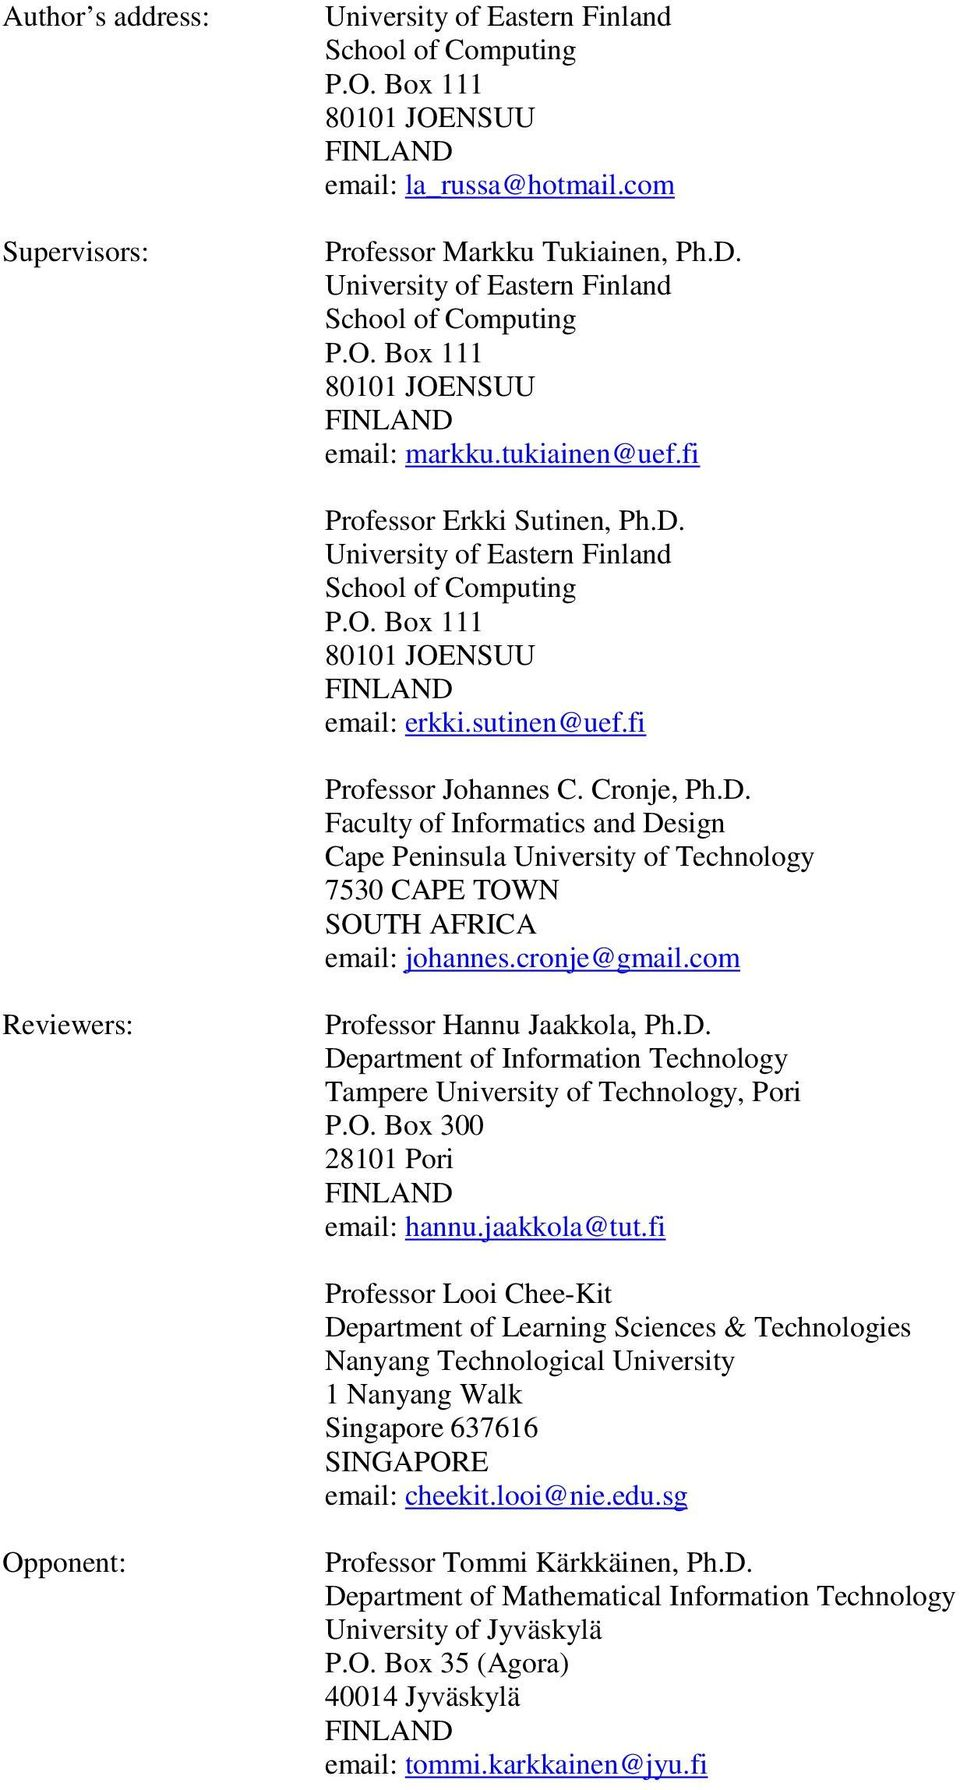 cronje@gmail.com Reviewers: Professor Hannu Jaakkola, Ph.D. Department of Information Technology Tampere University of Technology, Pori P.O. Box 300 28101 Pori FINLAND email: hannu.jaakkola@tut.